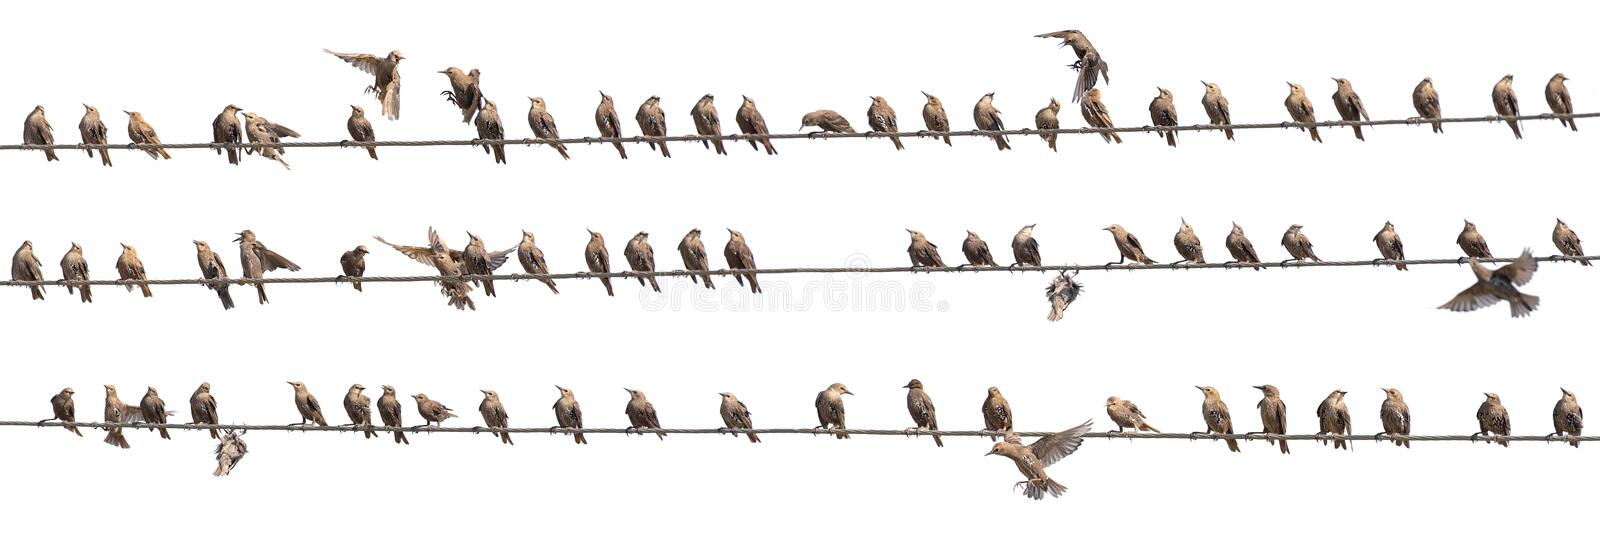 Flock of Common Starling, Sturnus vulgaris,on electricity wires. A lot of birds on white background.  stock images